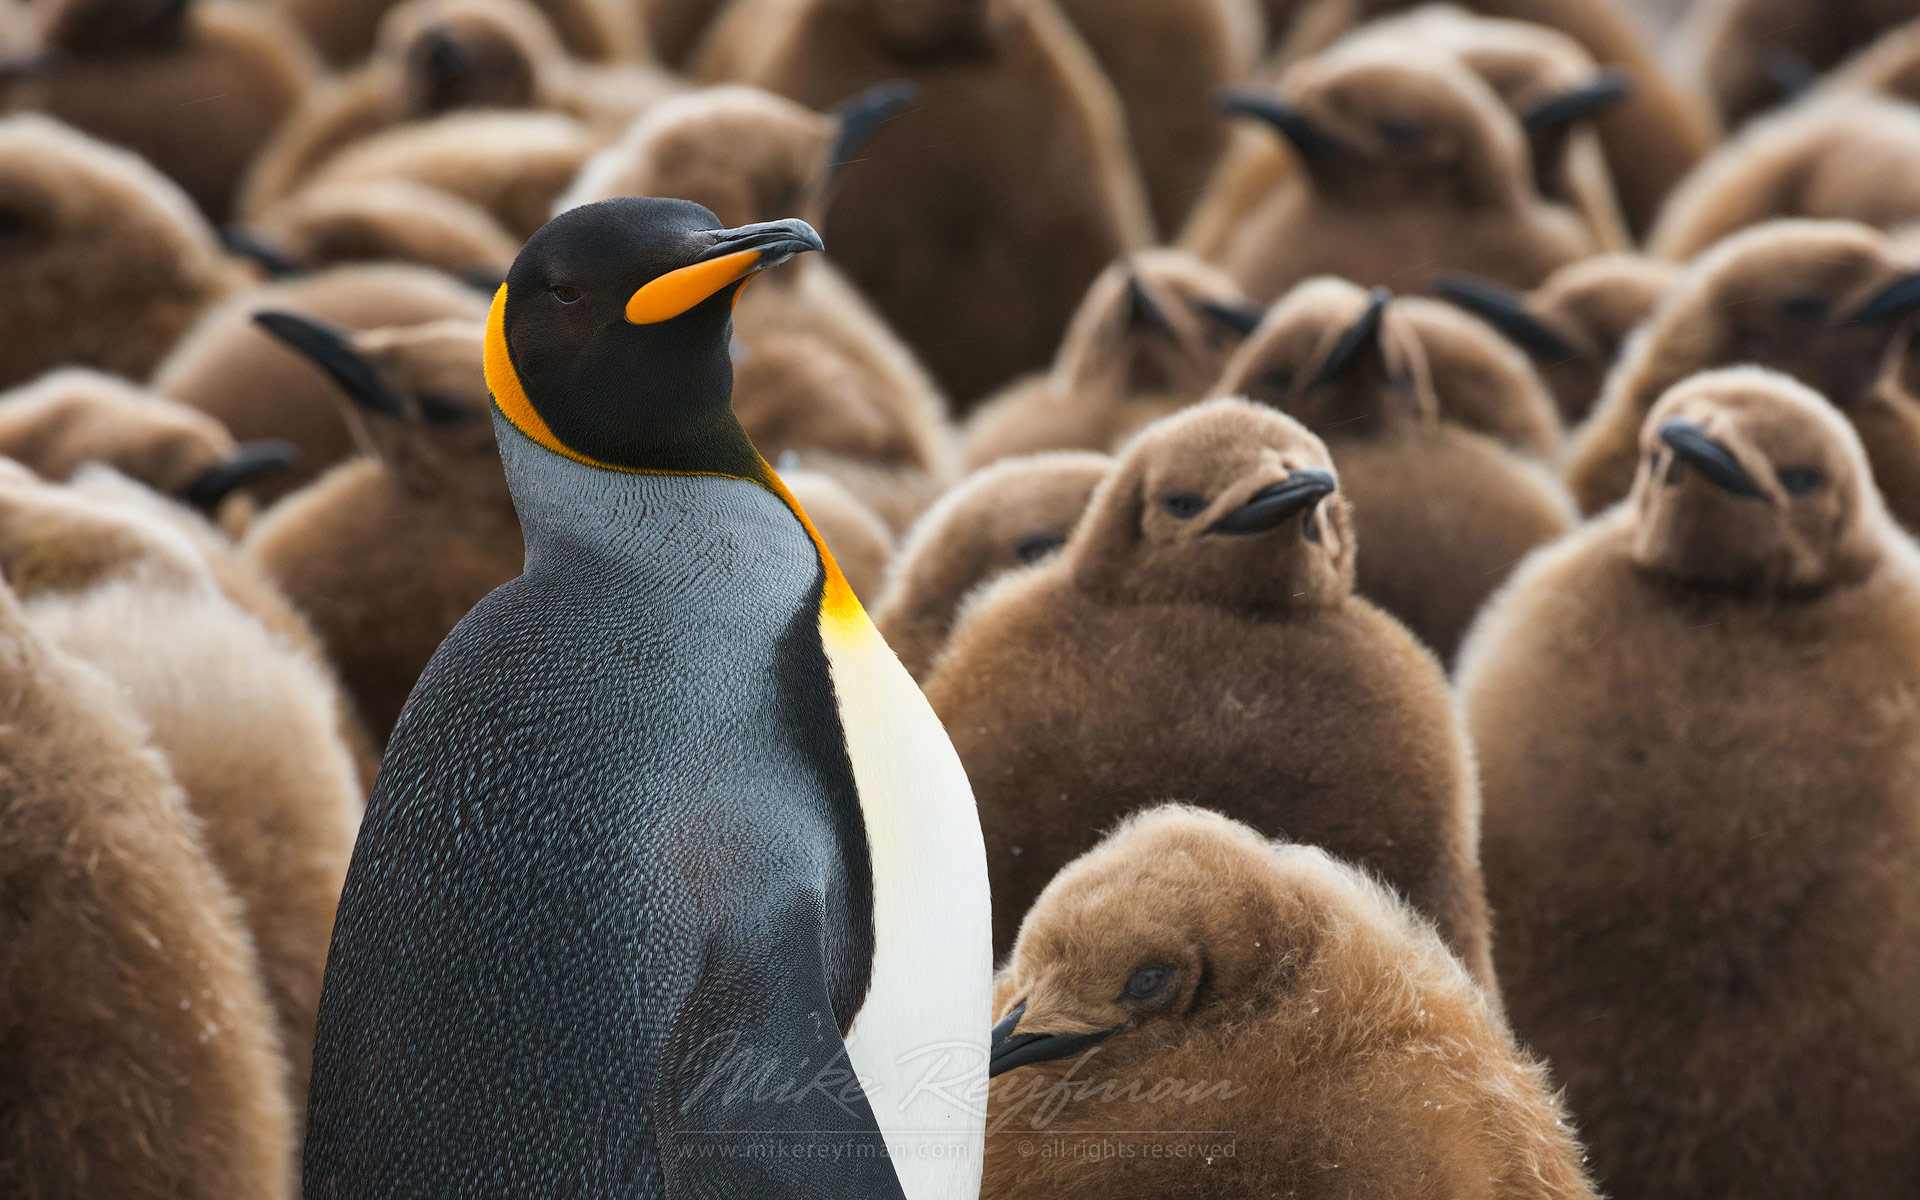 Adult King Penguin (Aptenodytes patagonicus) and chicks. King Penguin Creche. Salisbury Plain, South Georgia, Sub-Antarctic - King-Penguin-Chicks-In-Creche-South-Georgia-Sub-Antarctic - Mike Reyfman Photography